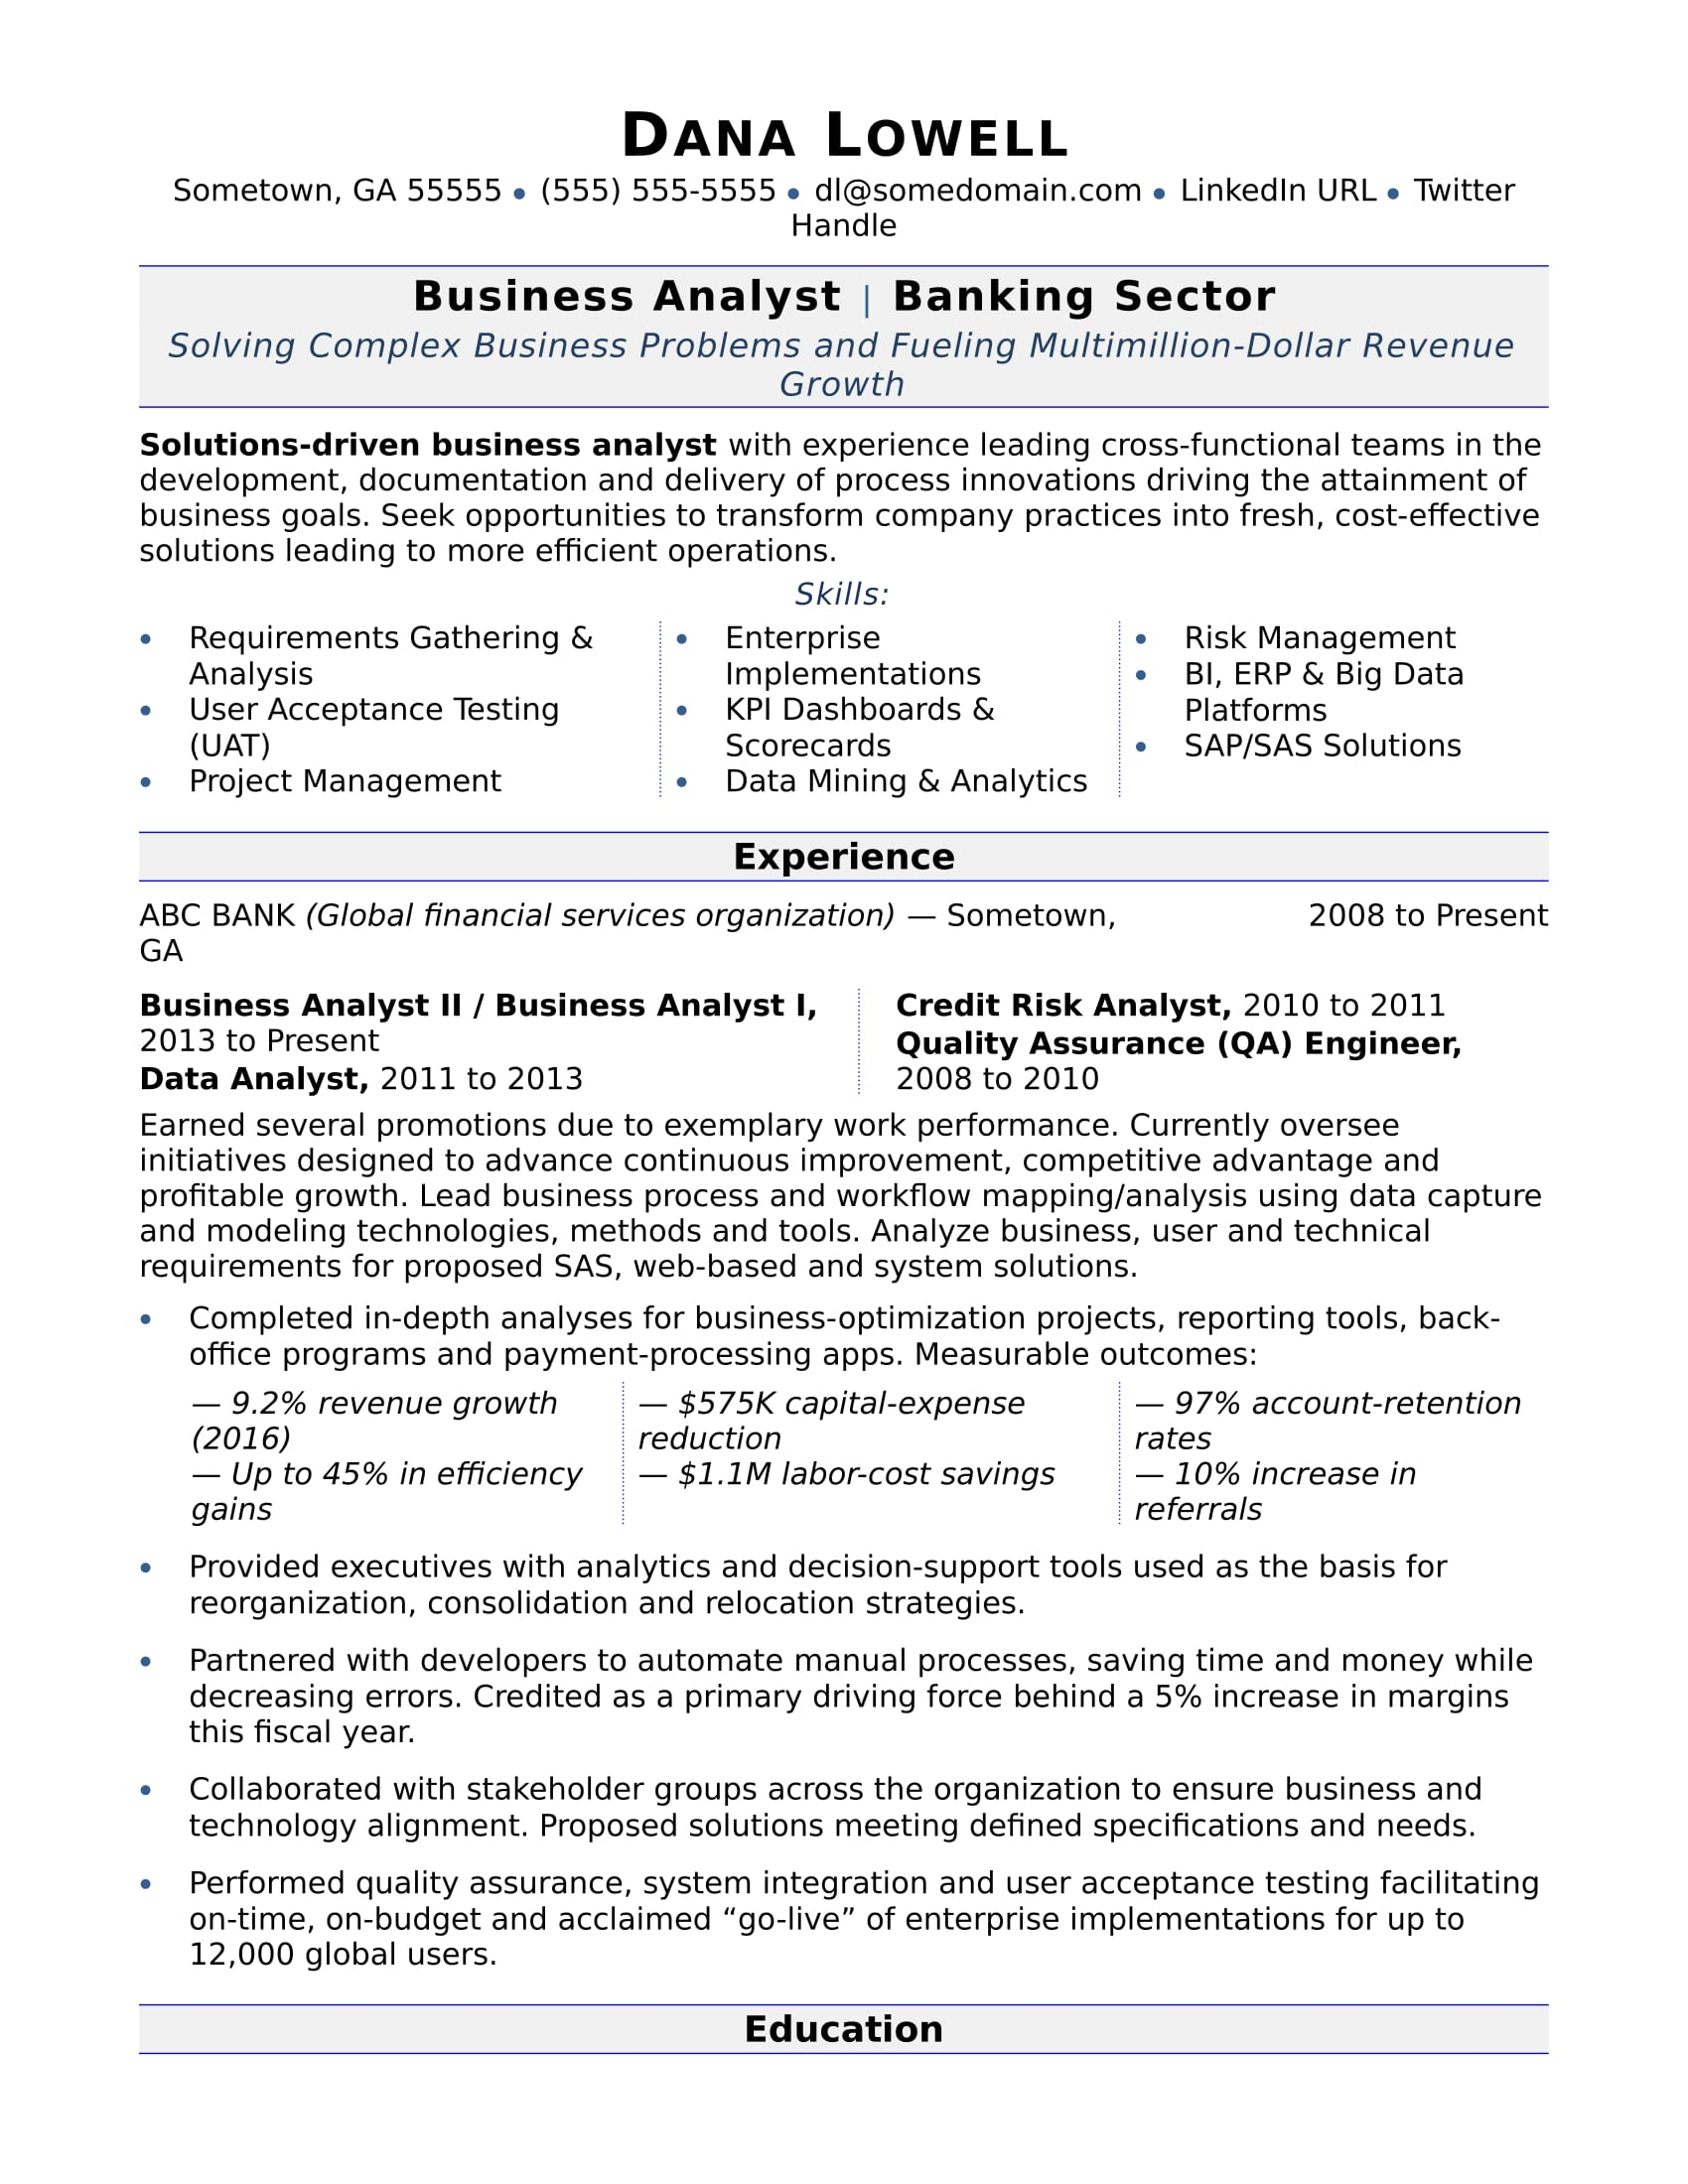 Business analyst resume sample monster business analyst resume sample accmission